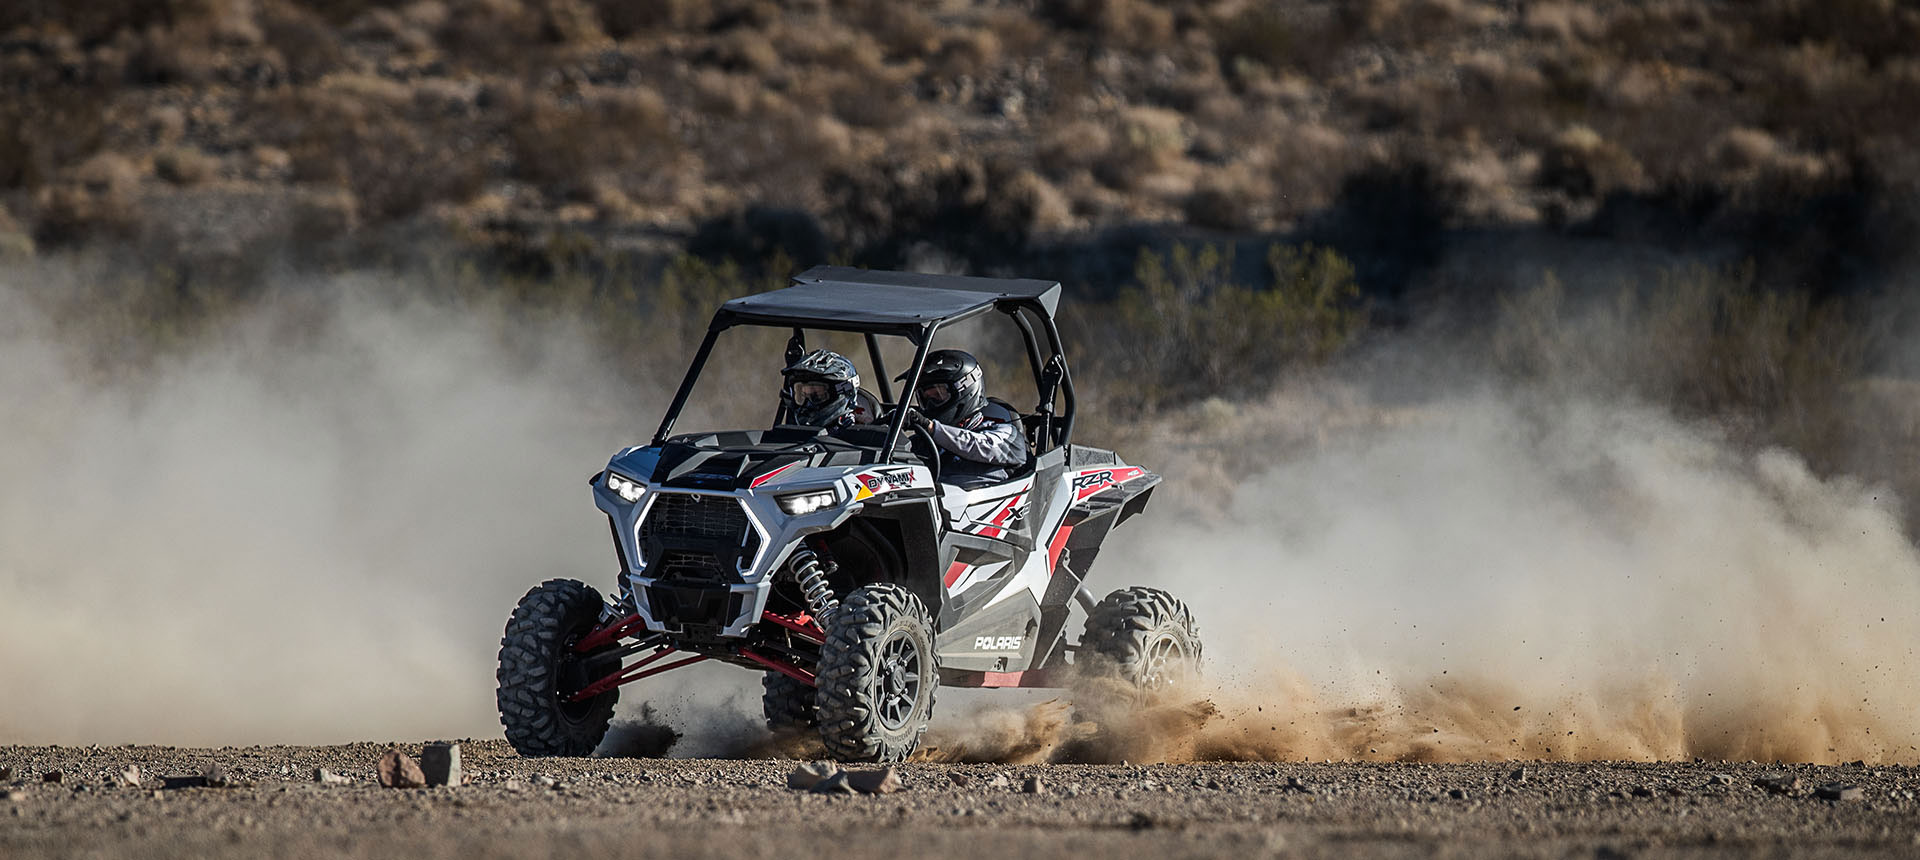 2019 Polaris RZR XP 1000 in Middletown, New Jersey